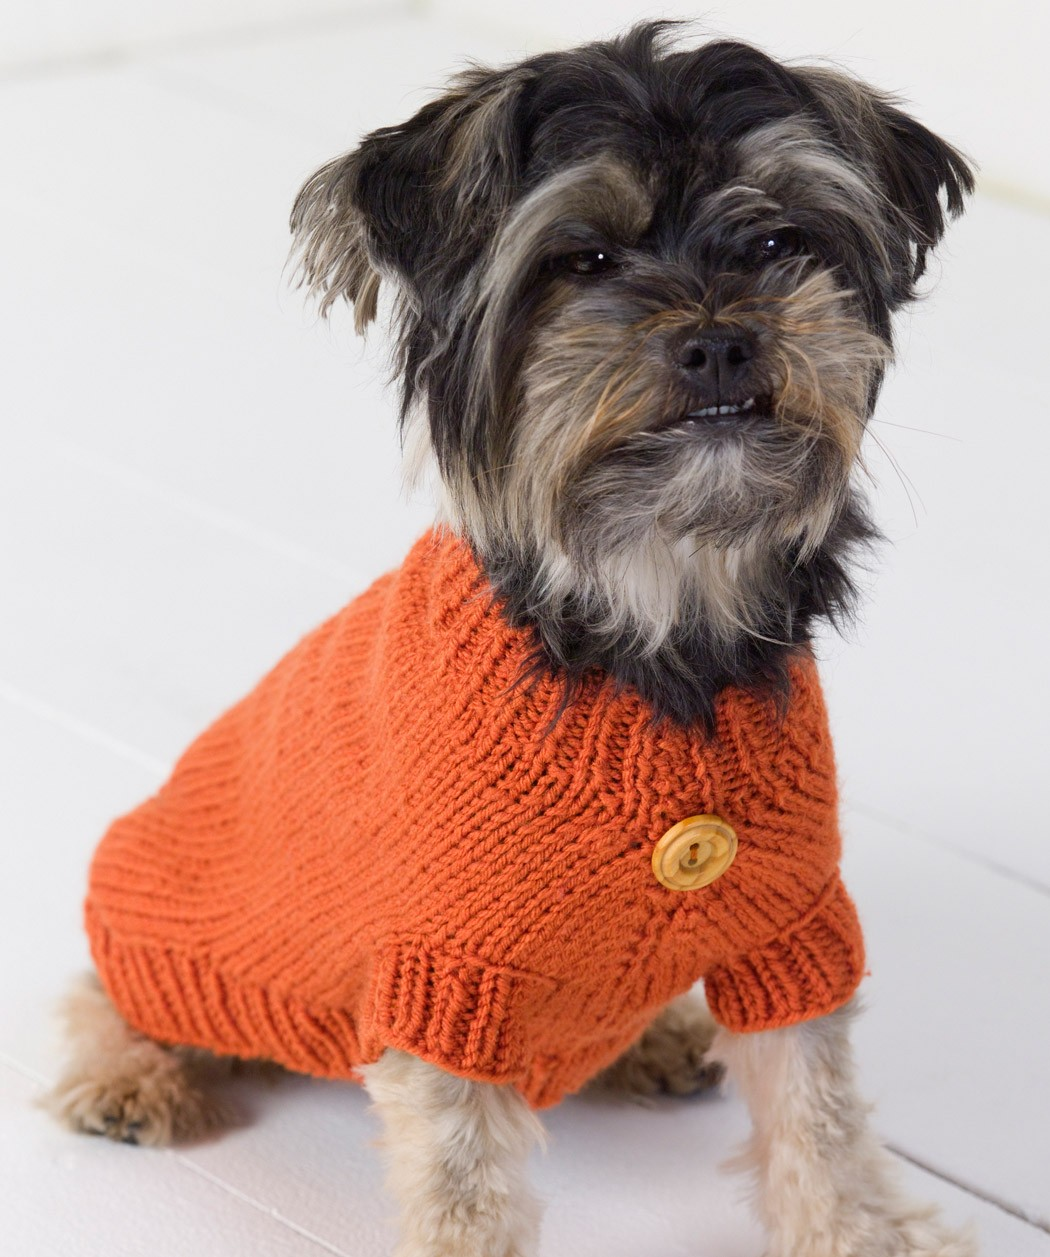 Knitted Dog Sweater Patterns Free : Dog Sweater Knitting Pattern Cute Small Dog Sweater Dog Breeds Picture